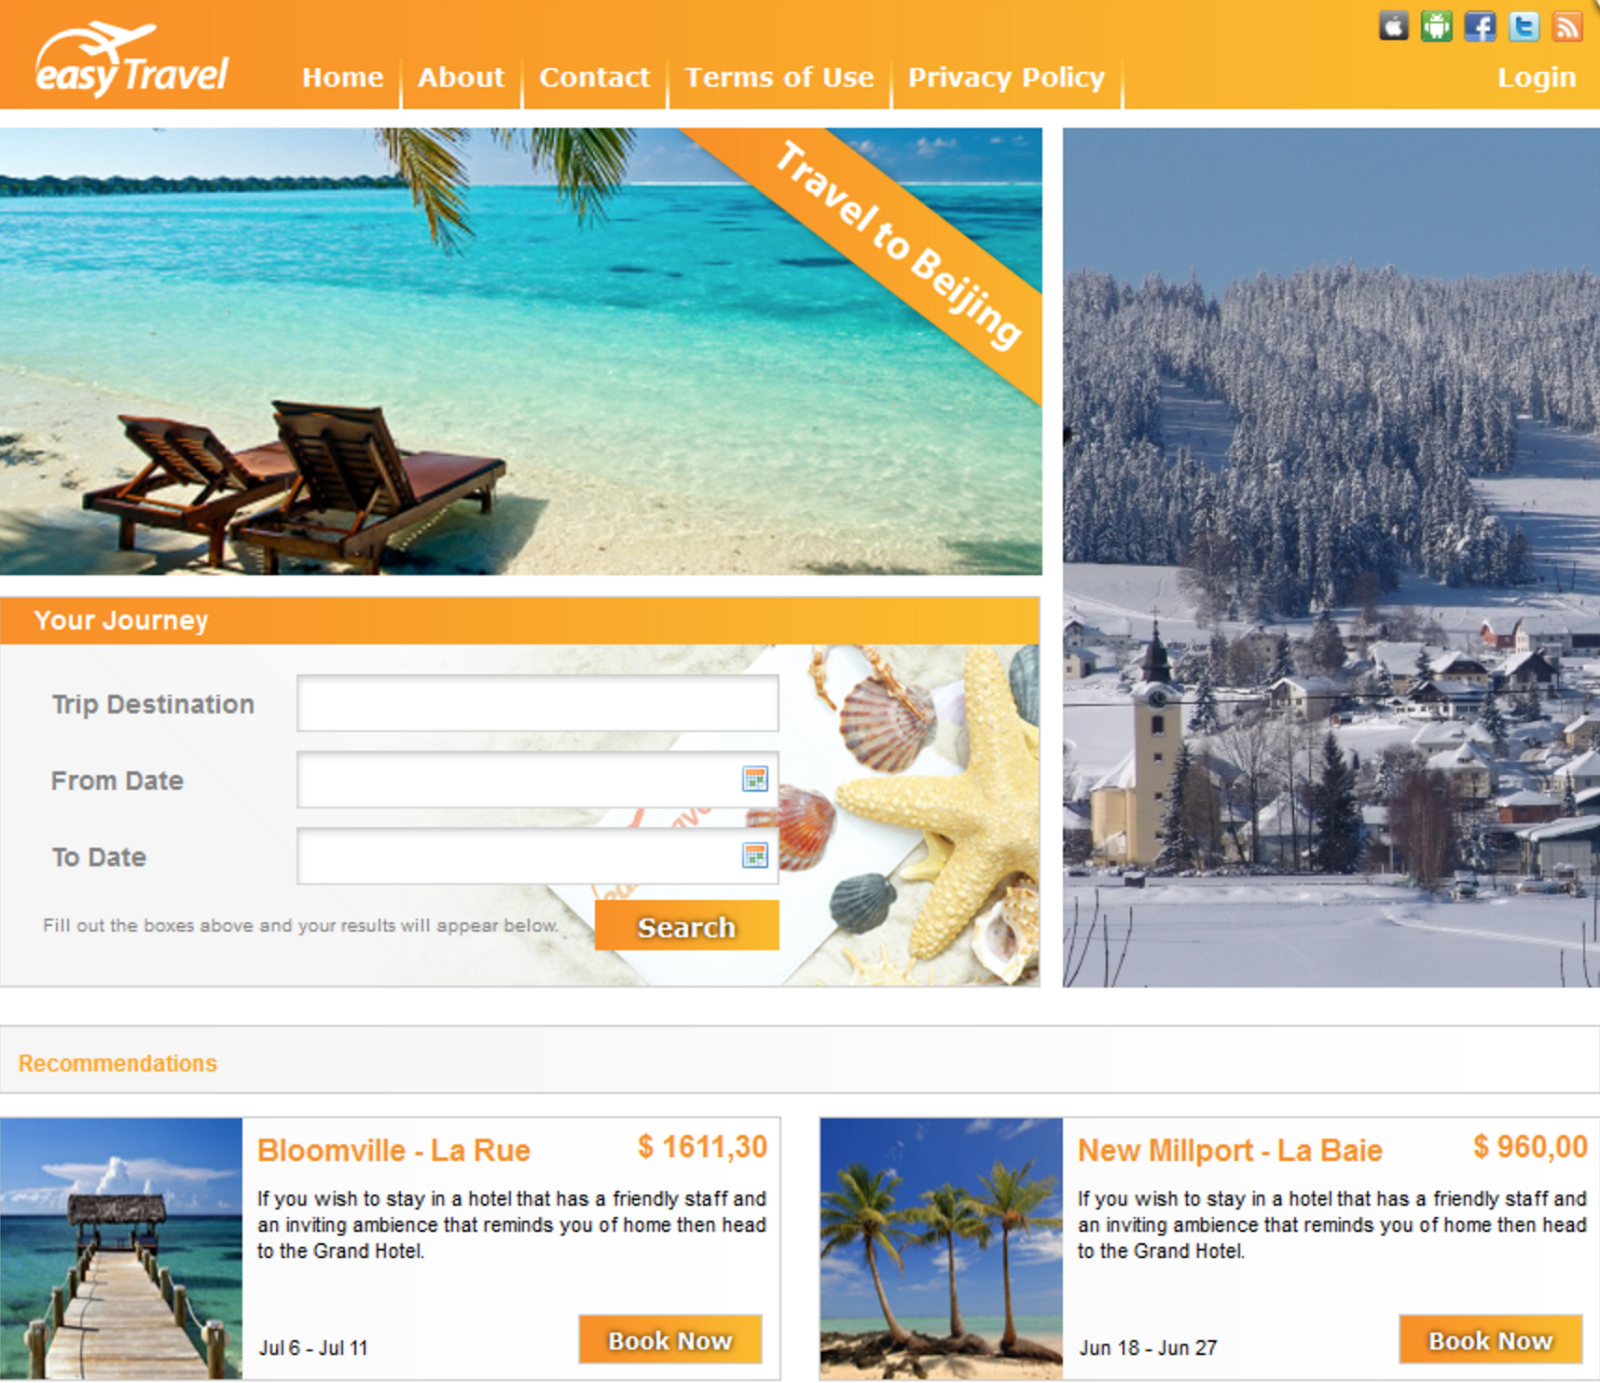 Dynatrace's Demo Application in OpsGenie Playground: easyTravel